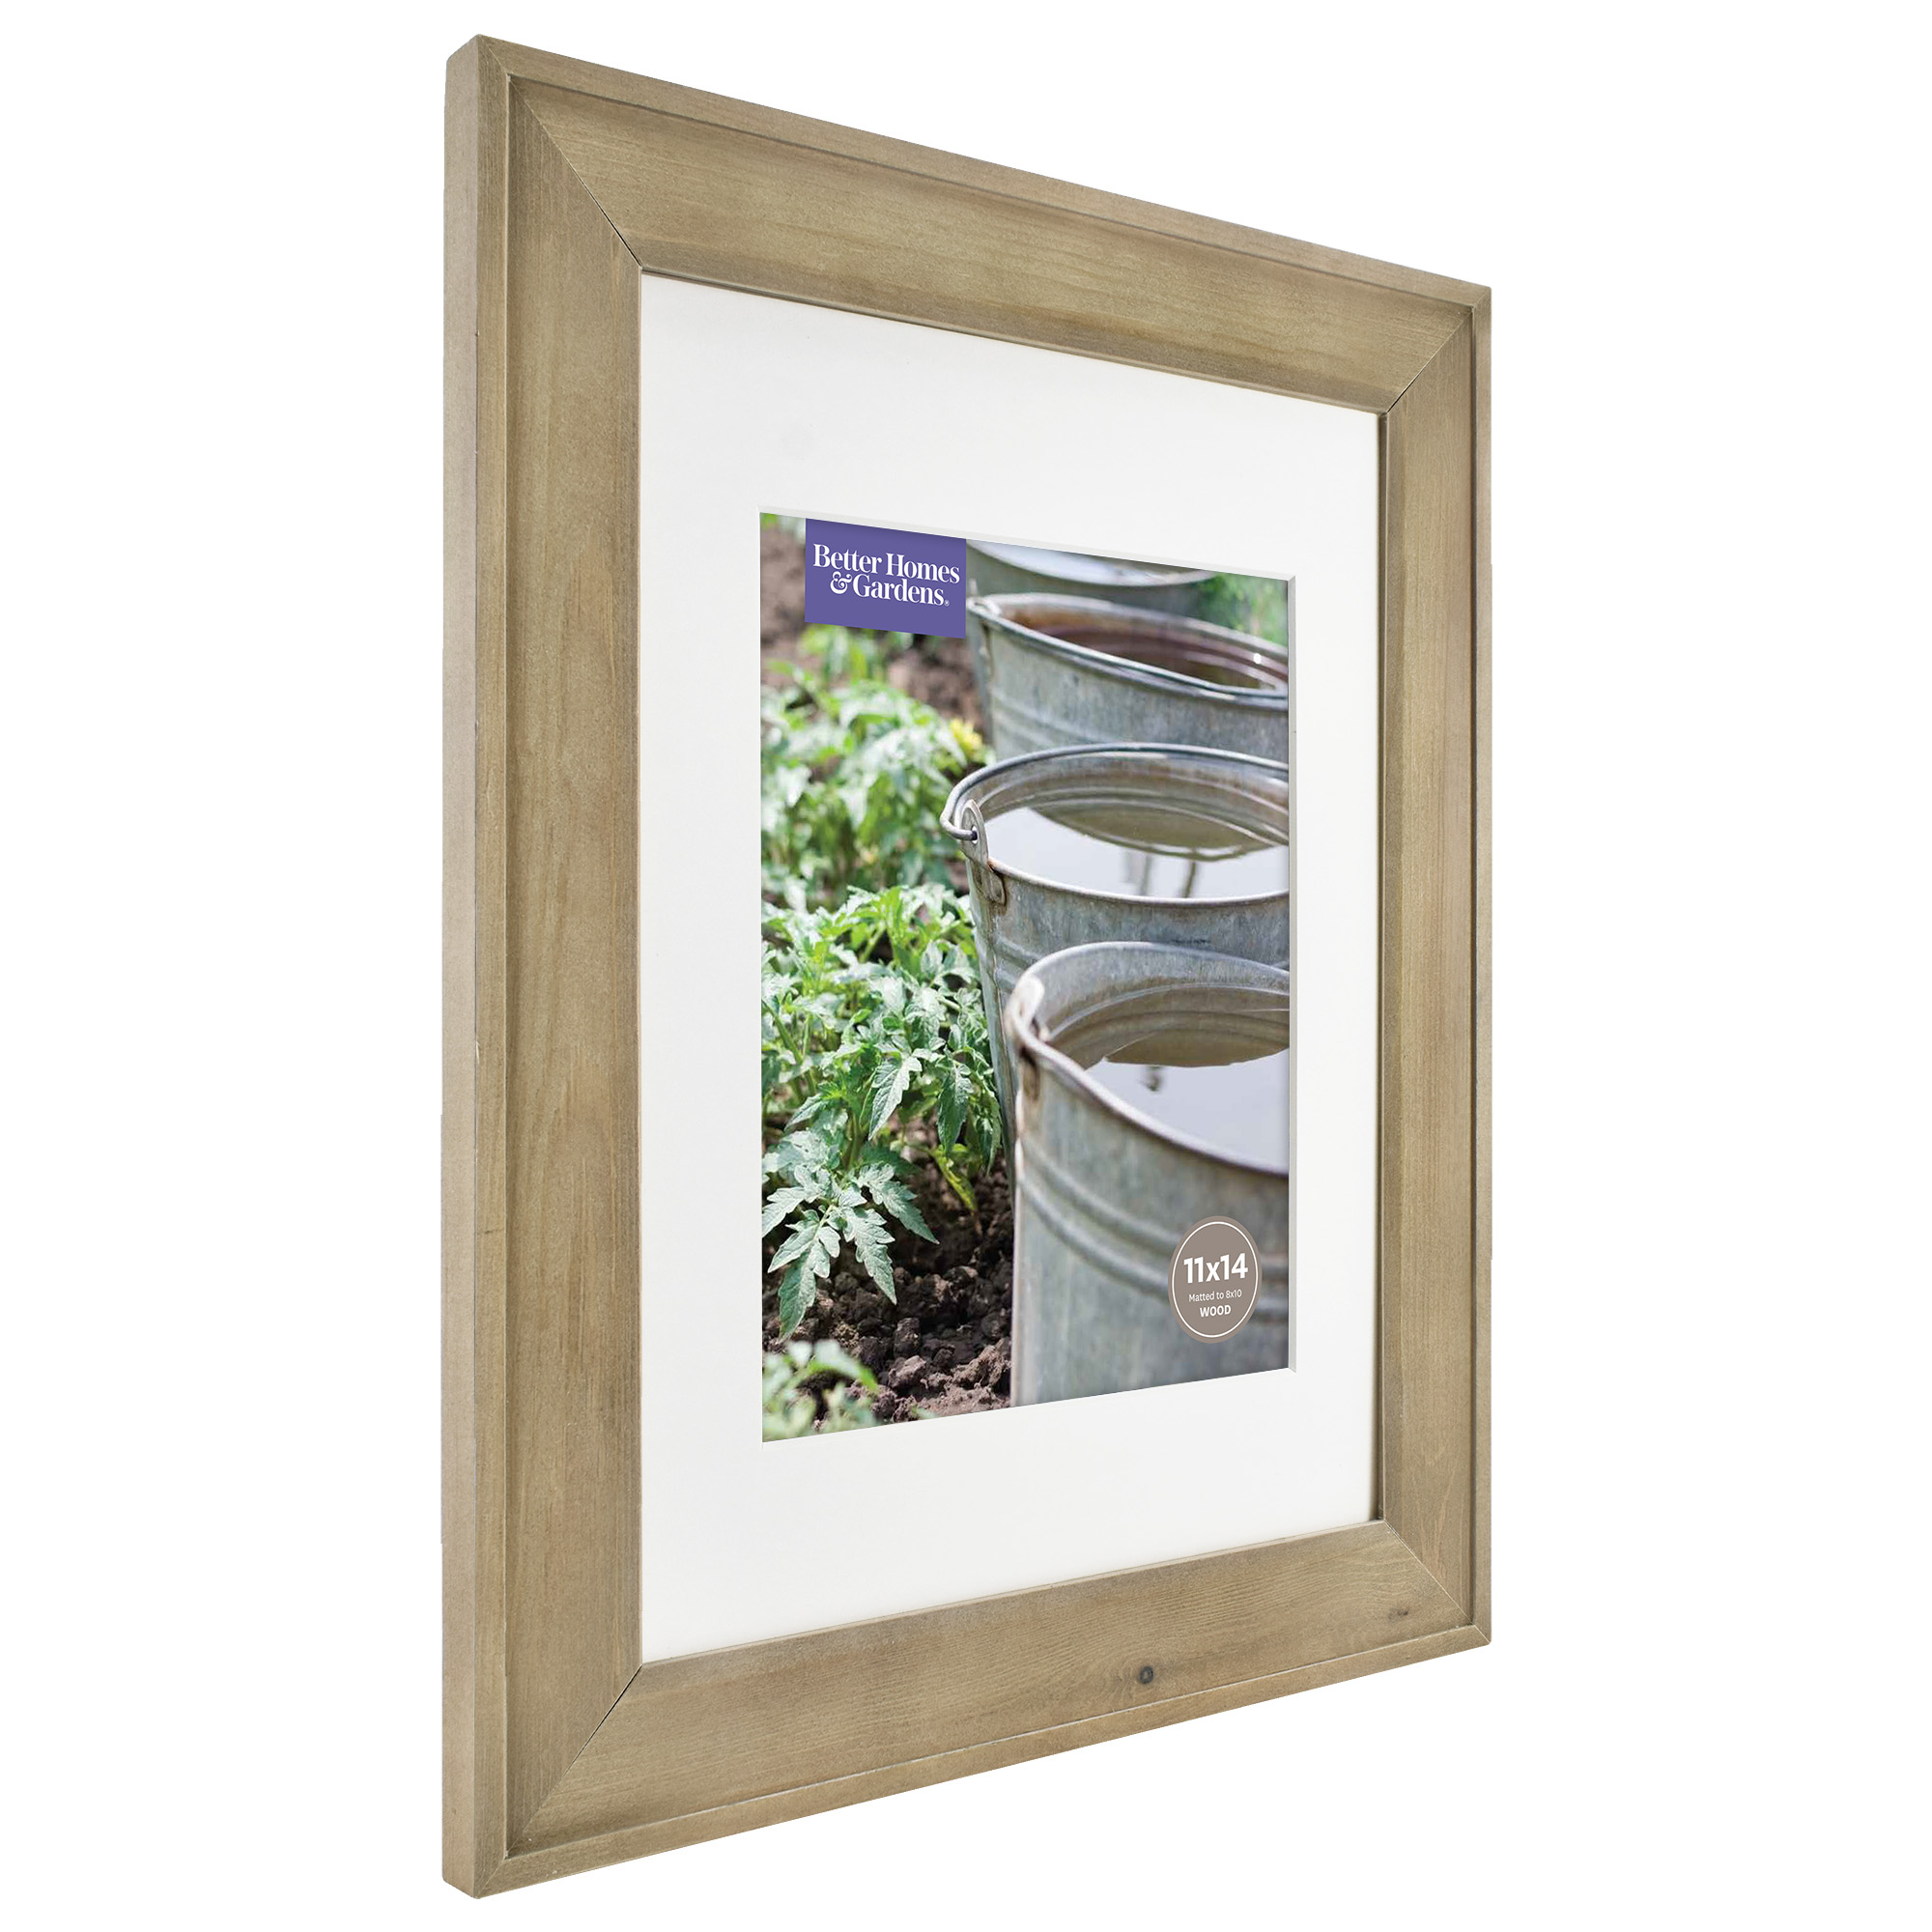 Better homes and gardens 11x148x10 rustic wood picture frame 2pk better homes and gardens 11x148x10 rustic wood picture frame 2pk walmart jeuxipadfo Image collections